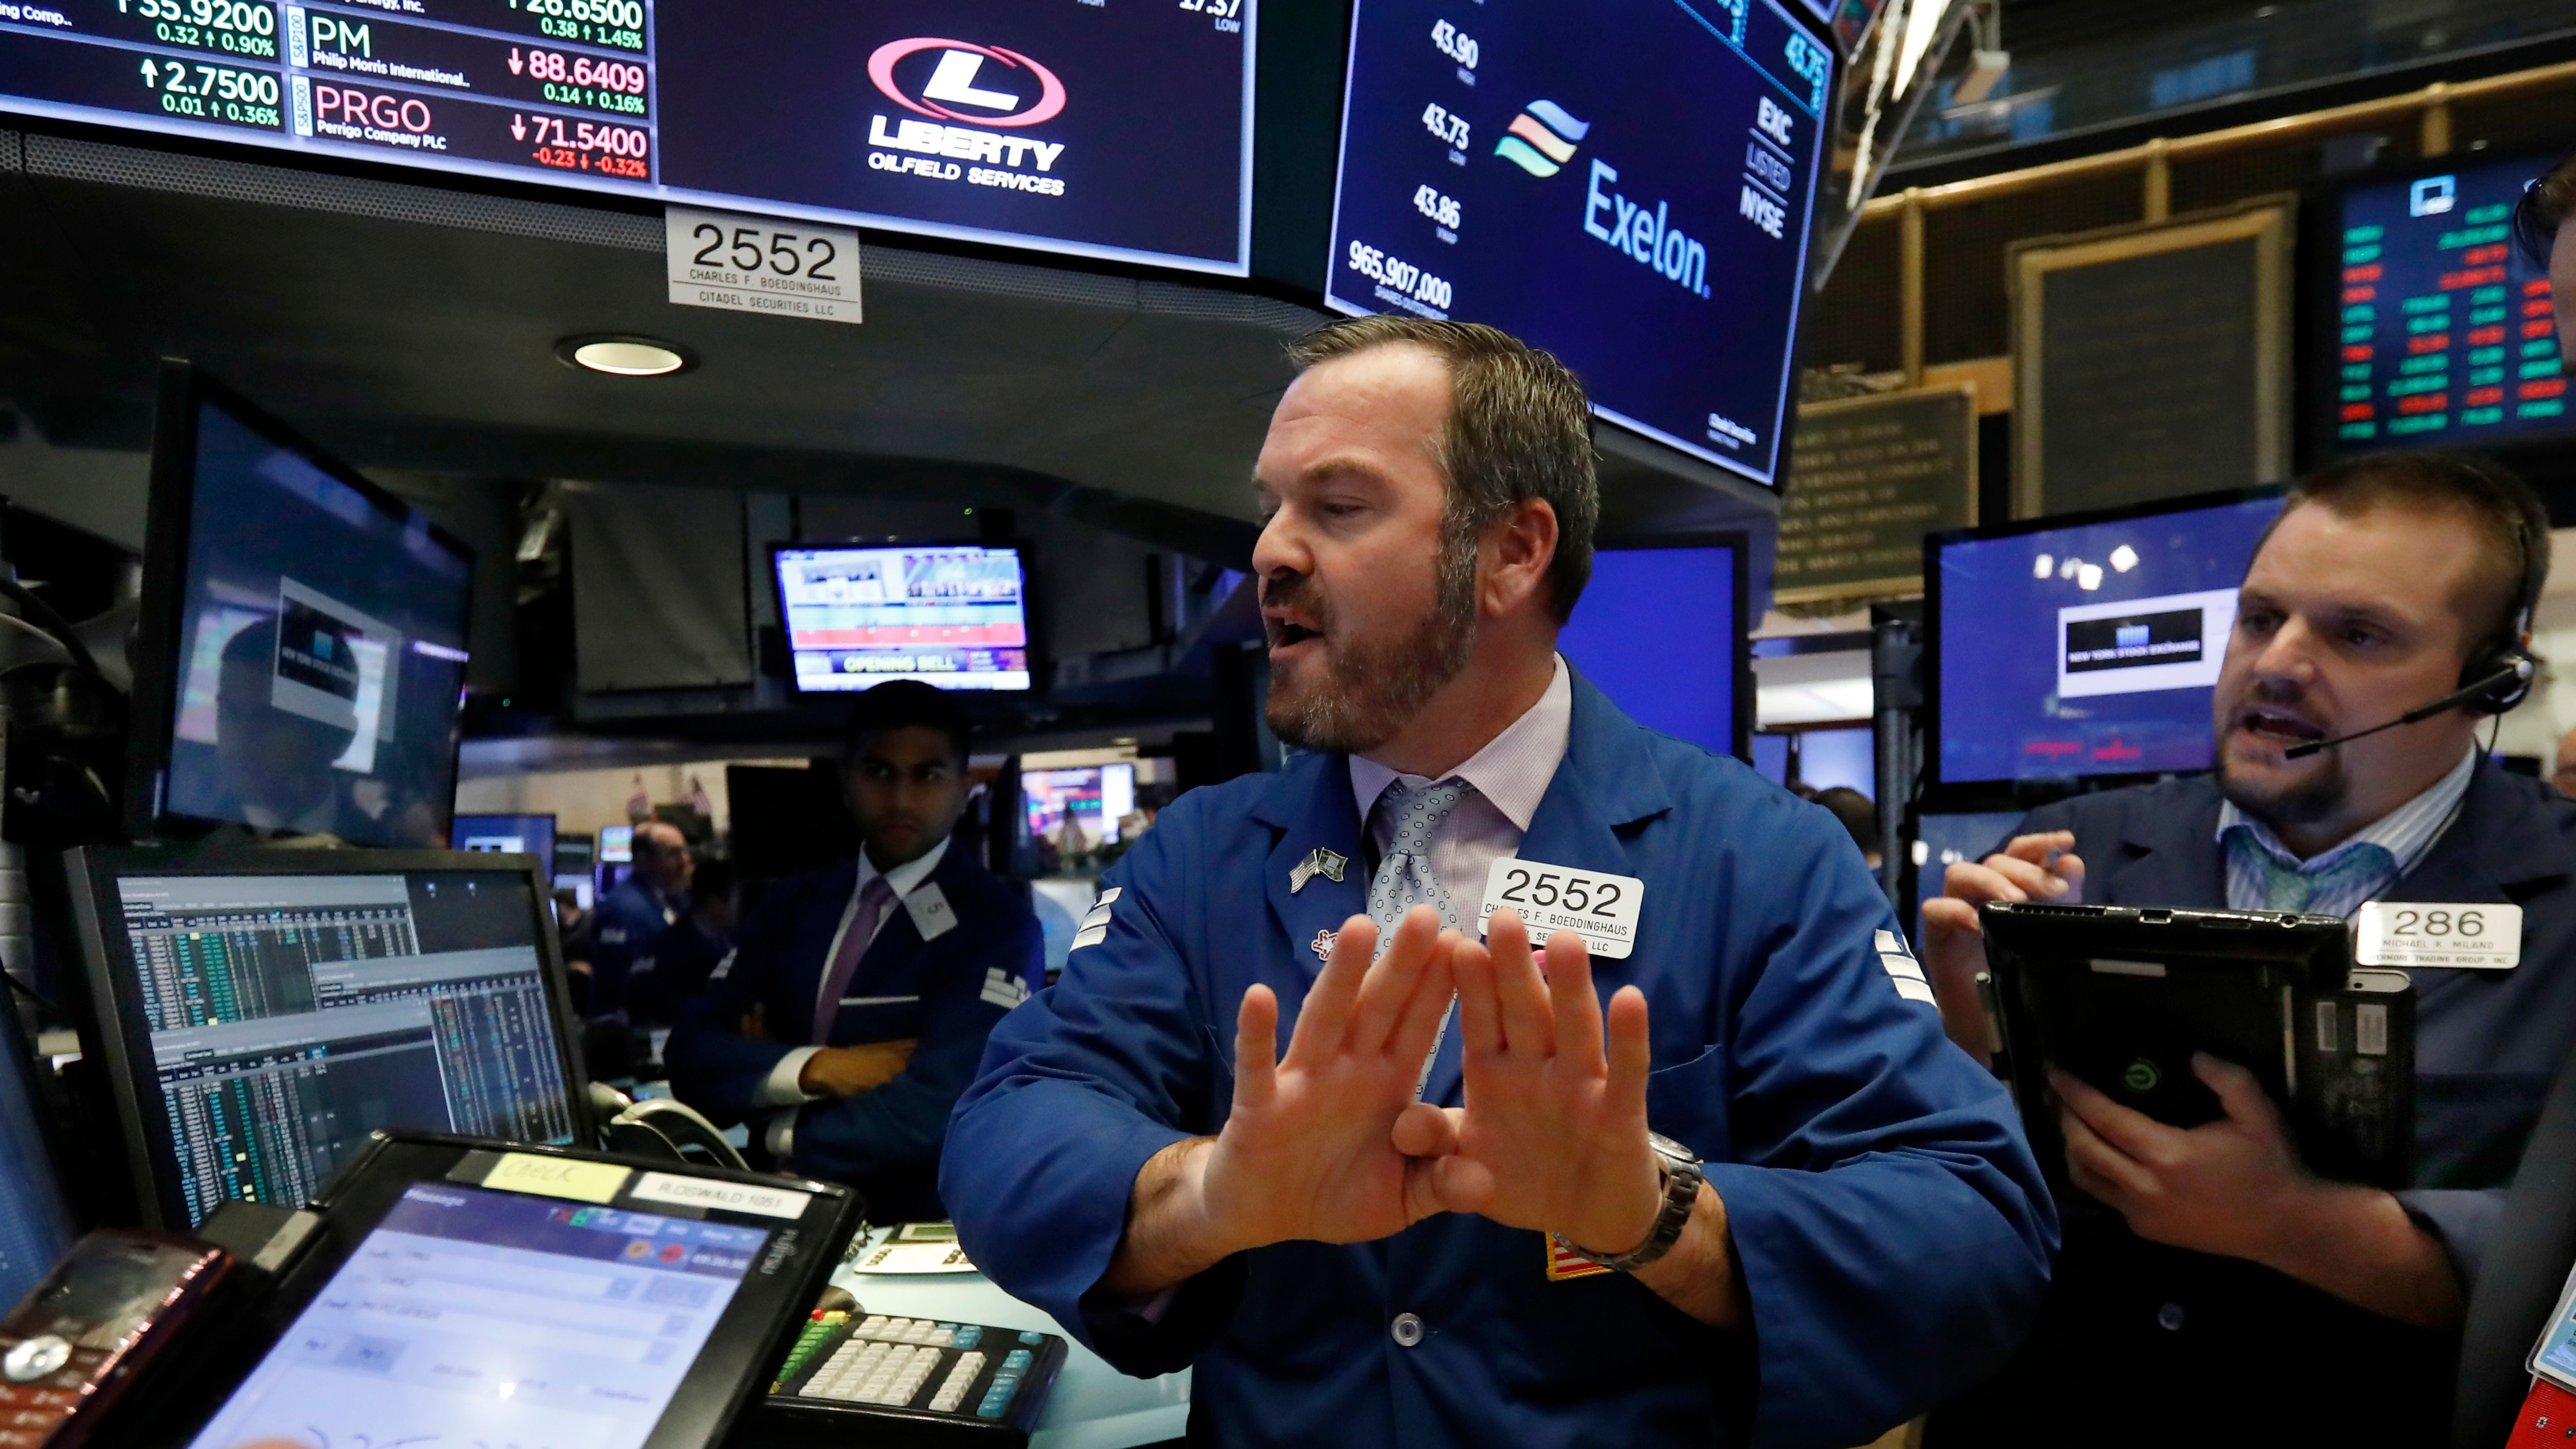 Stock market drops again wiping out 2018 gains for the Dow